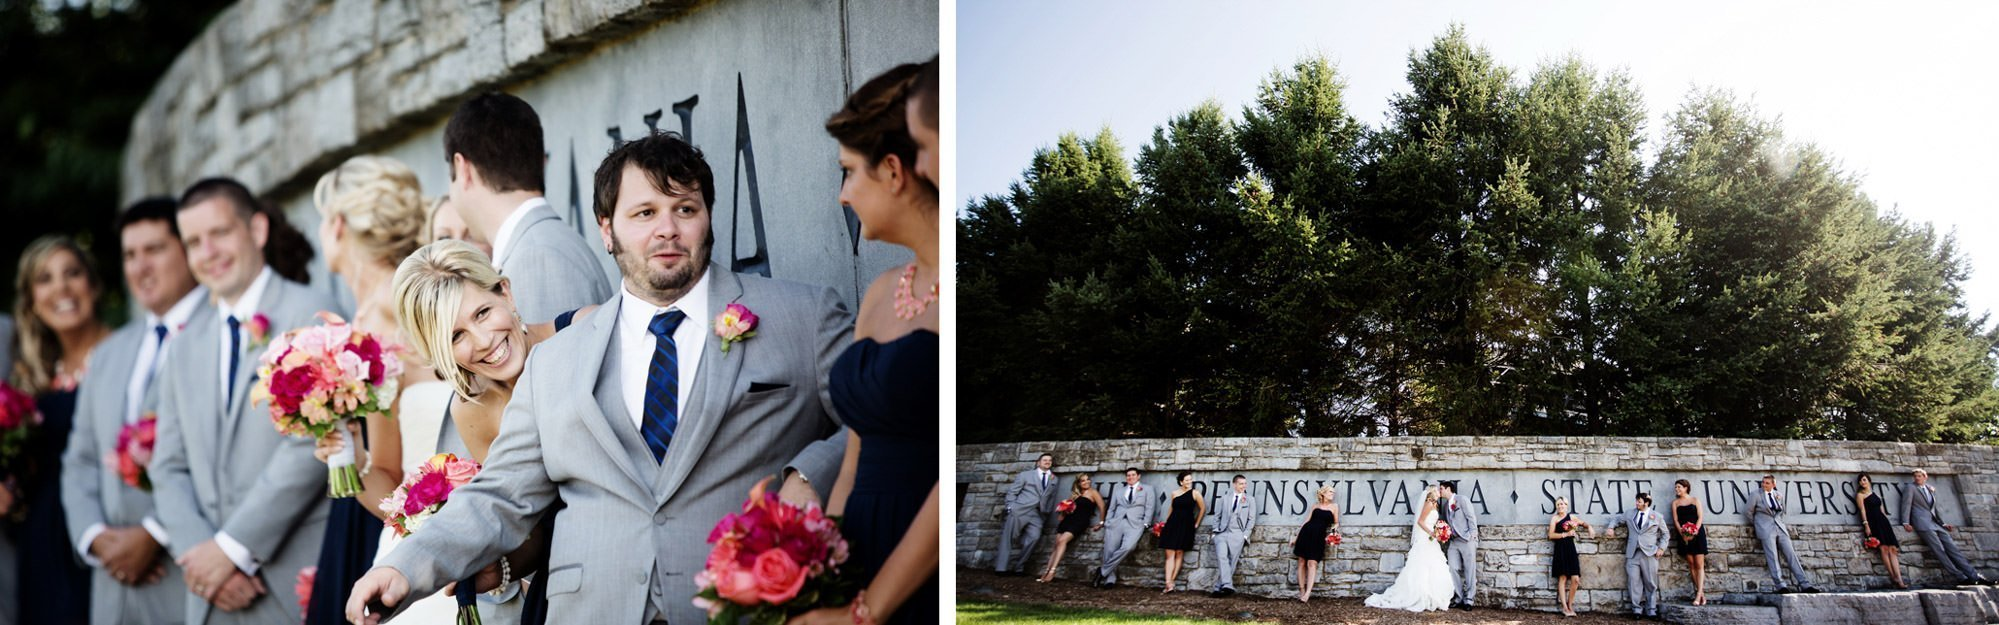 The wedding party poses for portraits at the entrance of Penn State University on the wedding day.